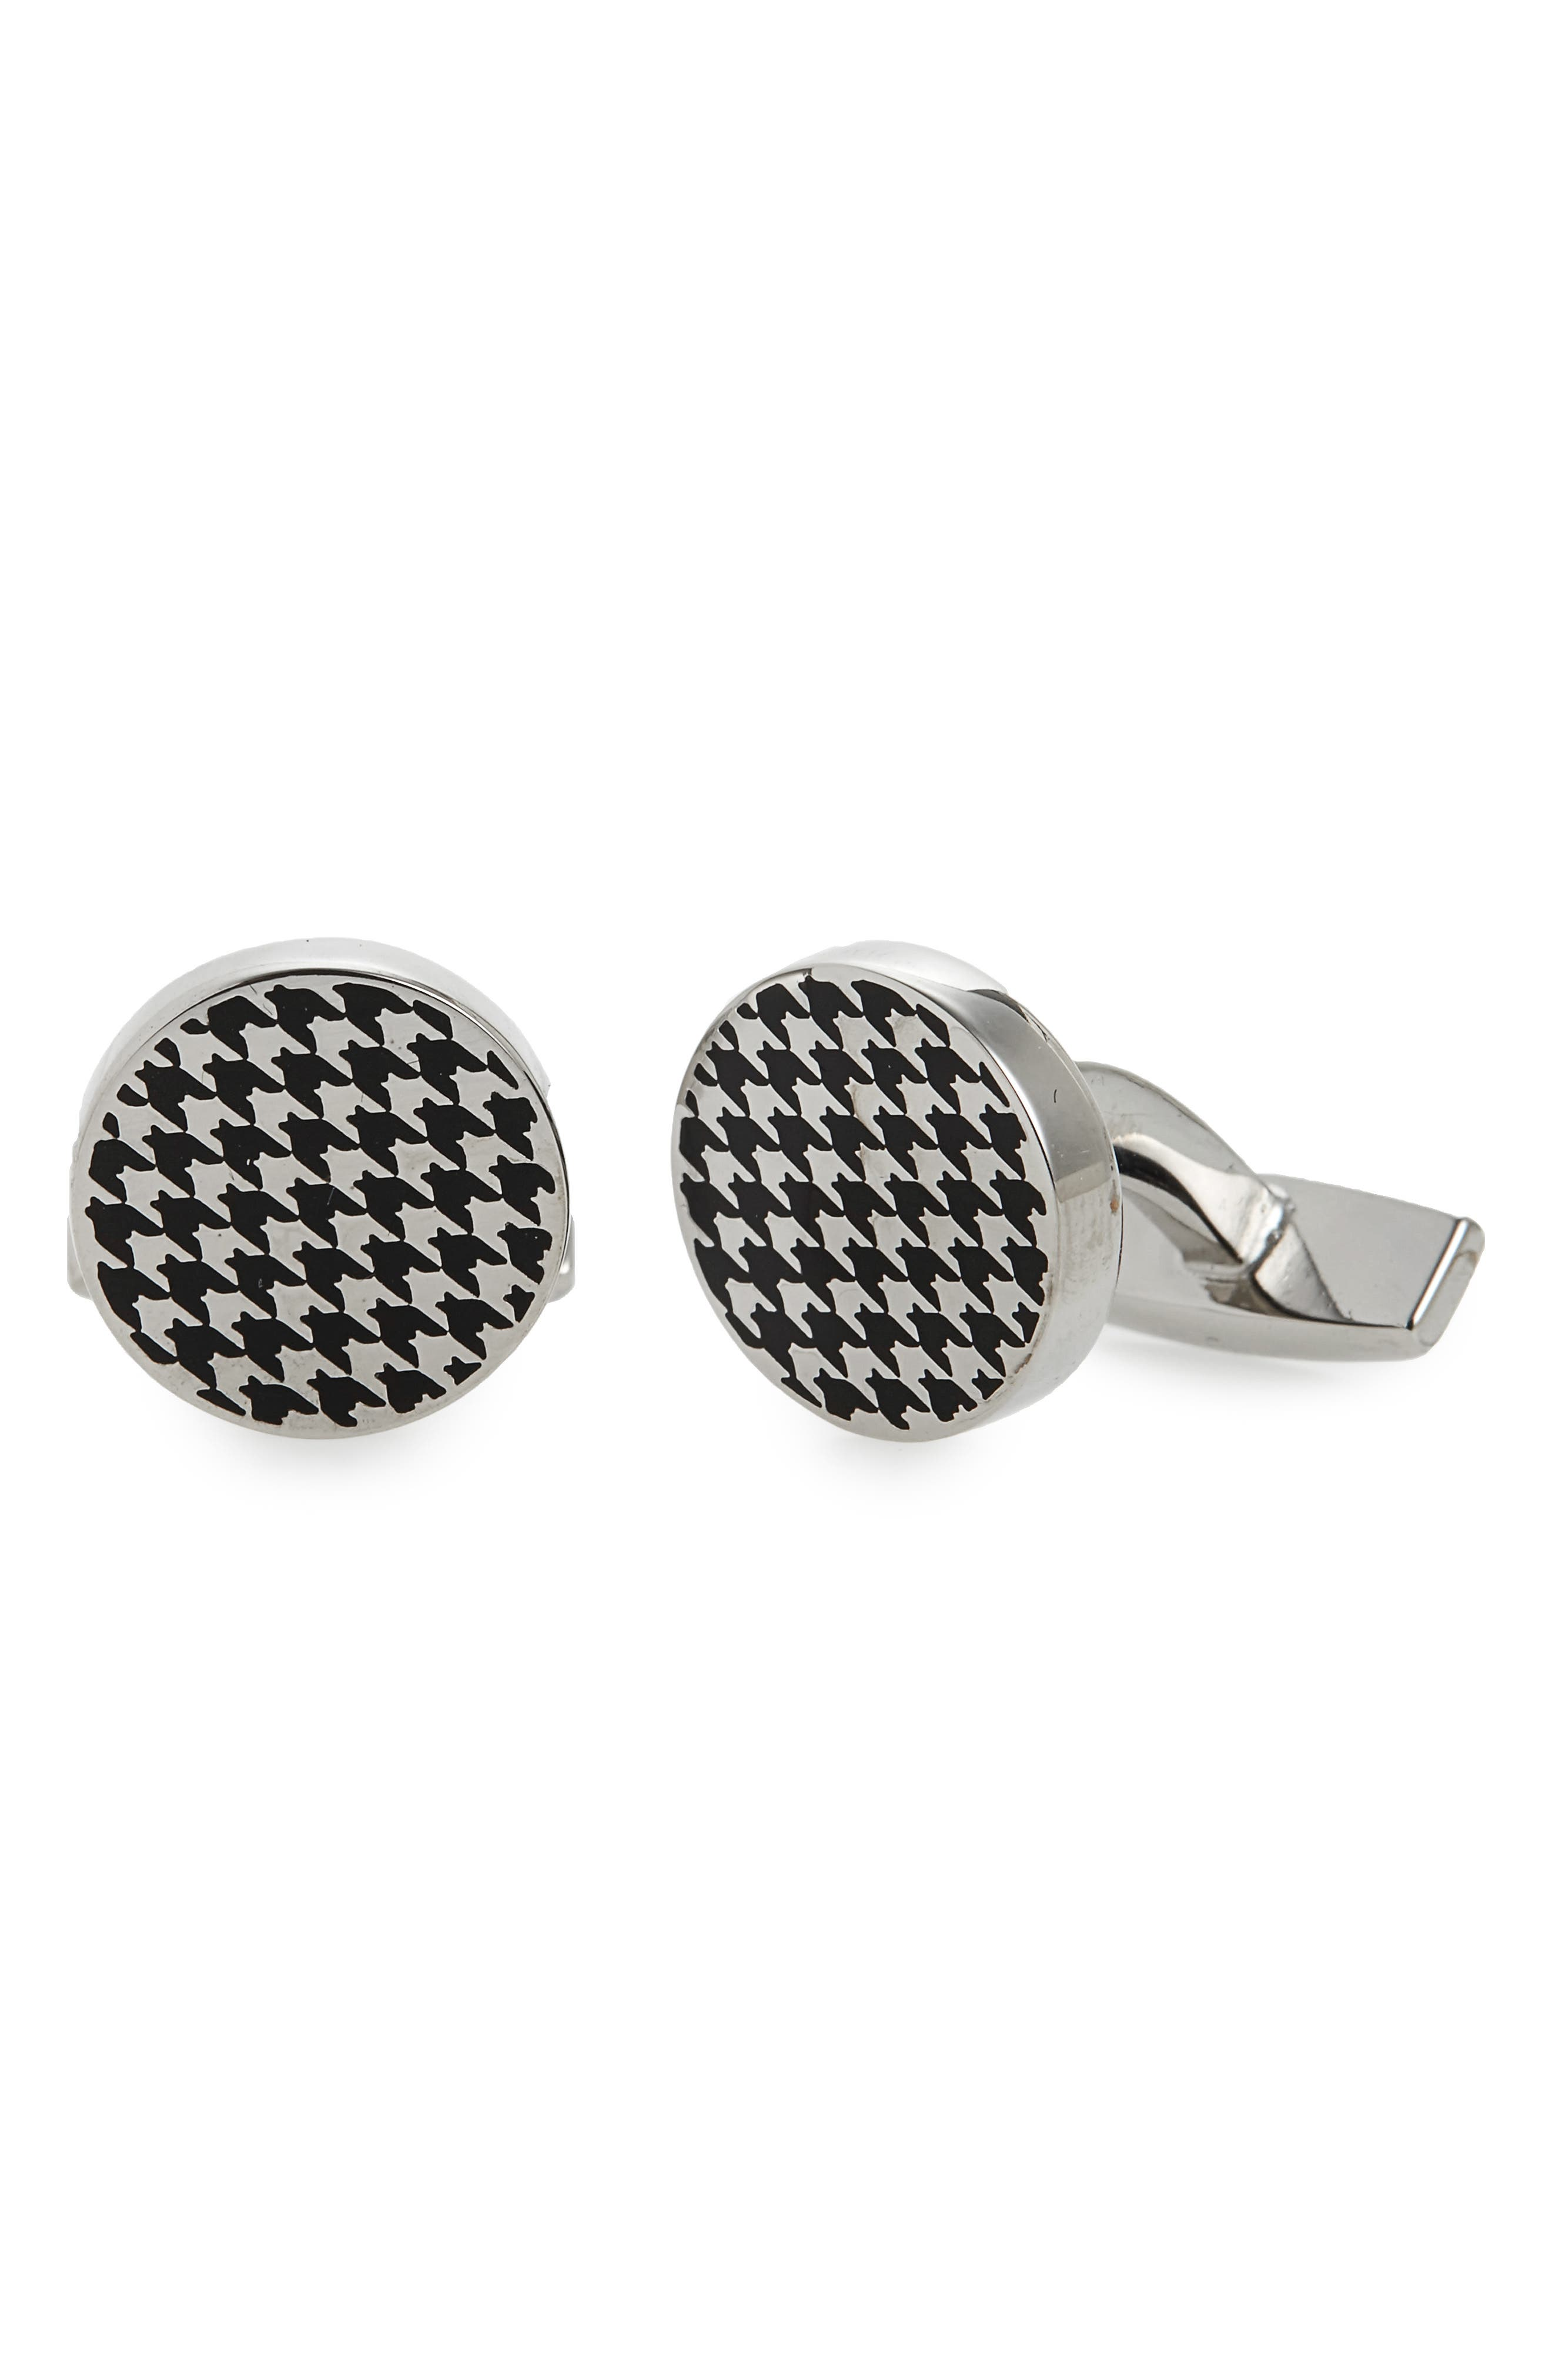 Enamel Houndstooth Cuff Links,                         Main,                         color, 001